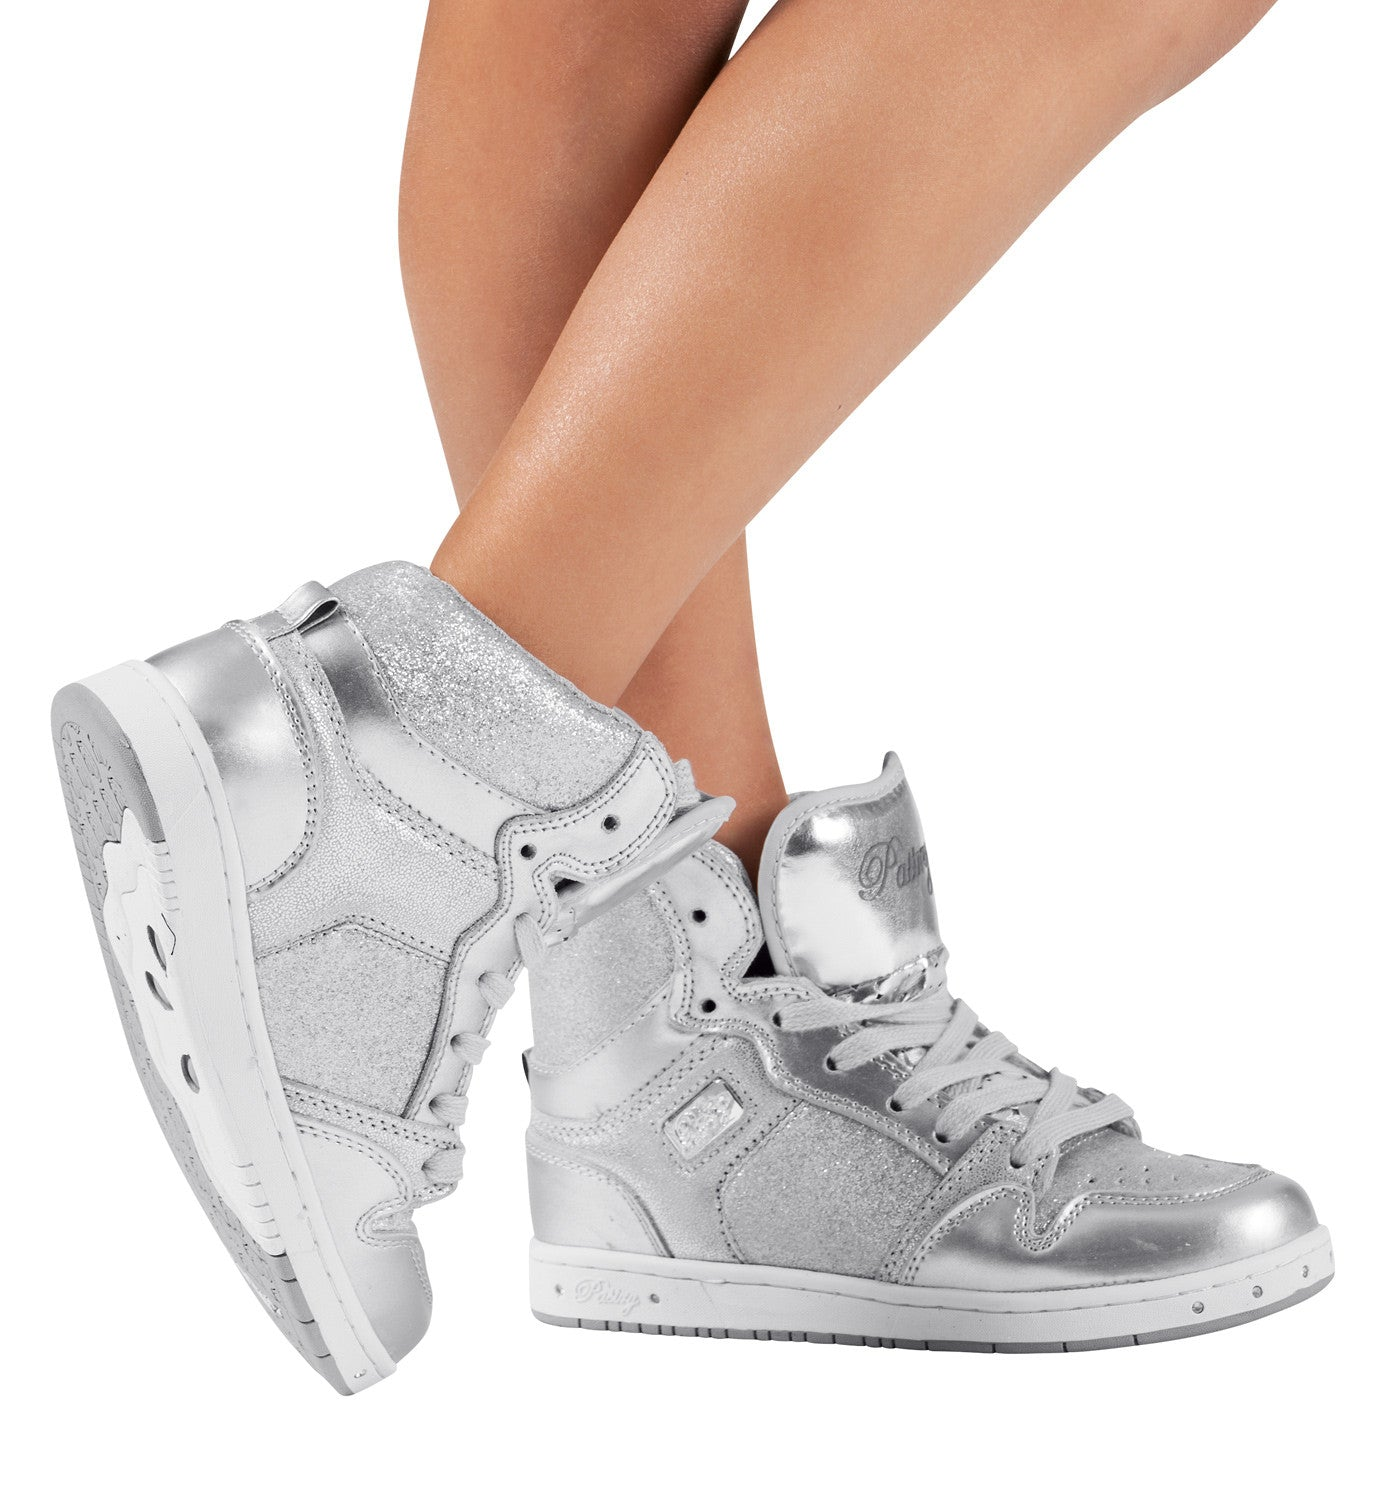 "Pastry ""Glam Pie"" Glitter Silver Sneakers for Kids"